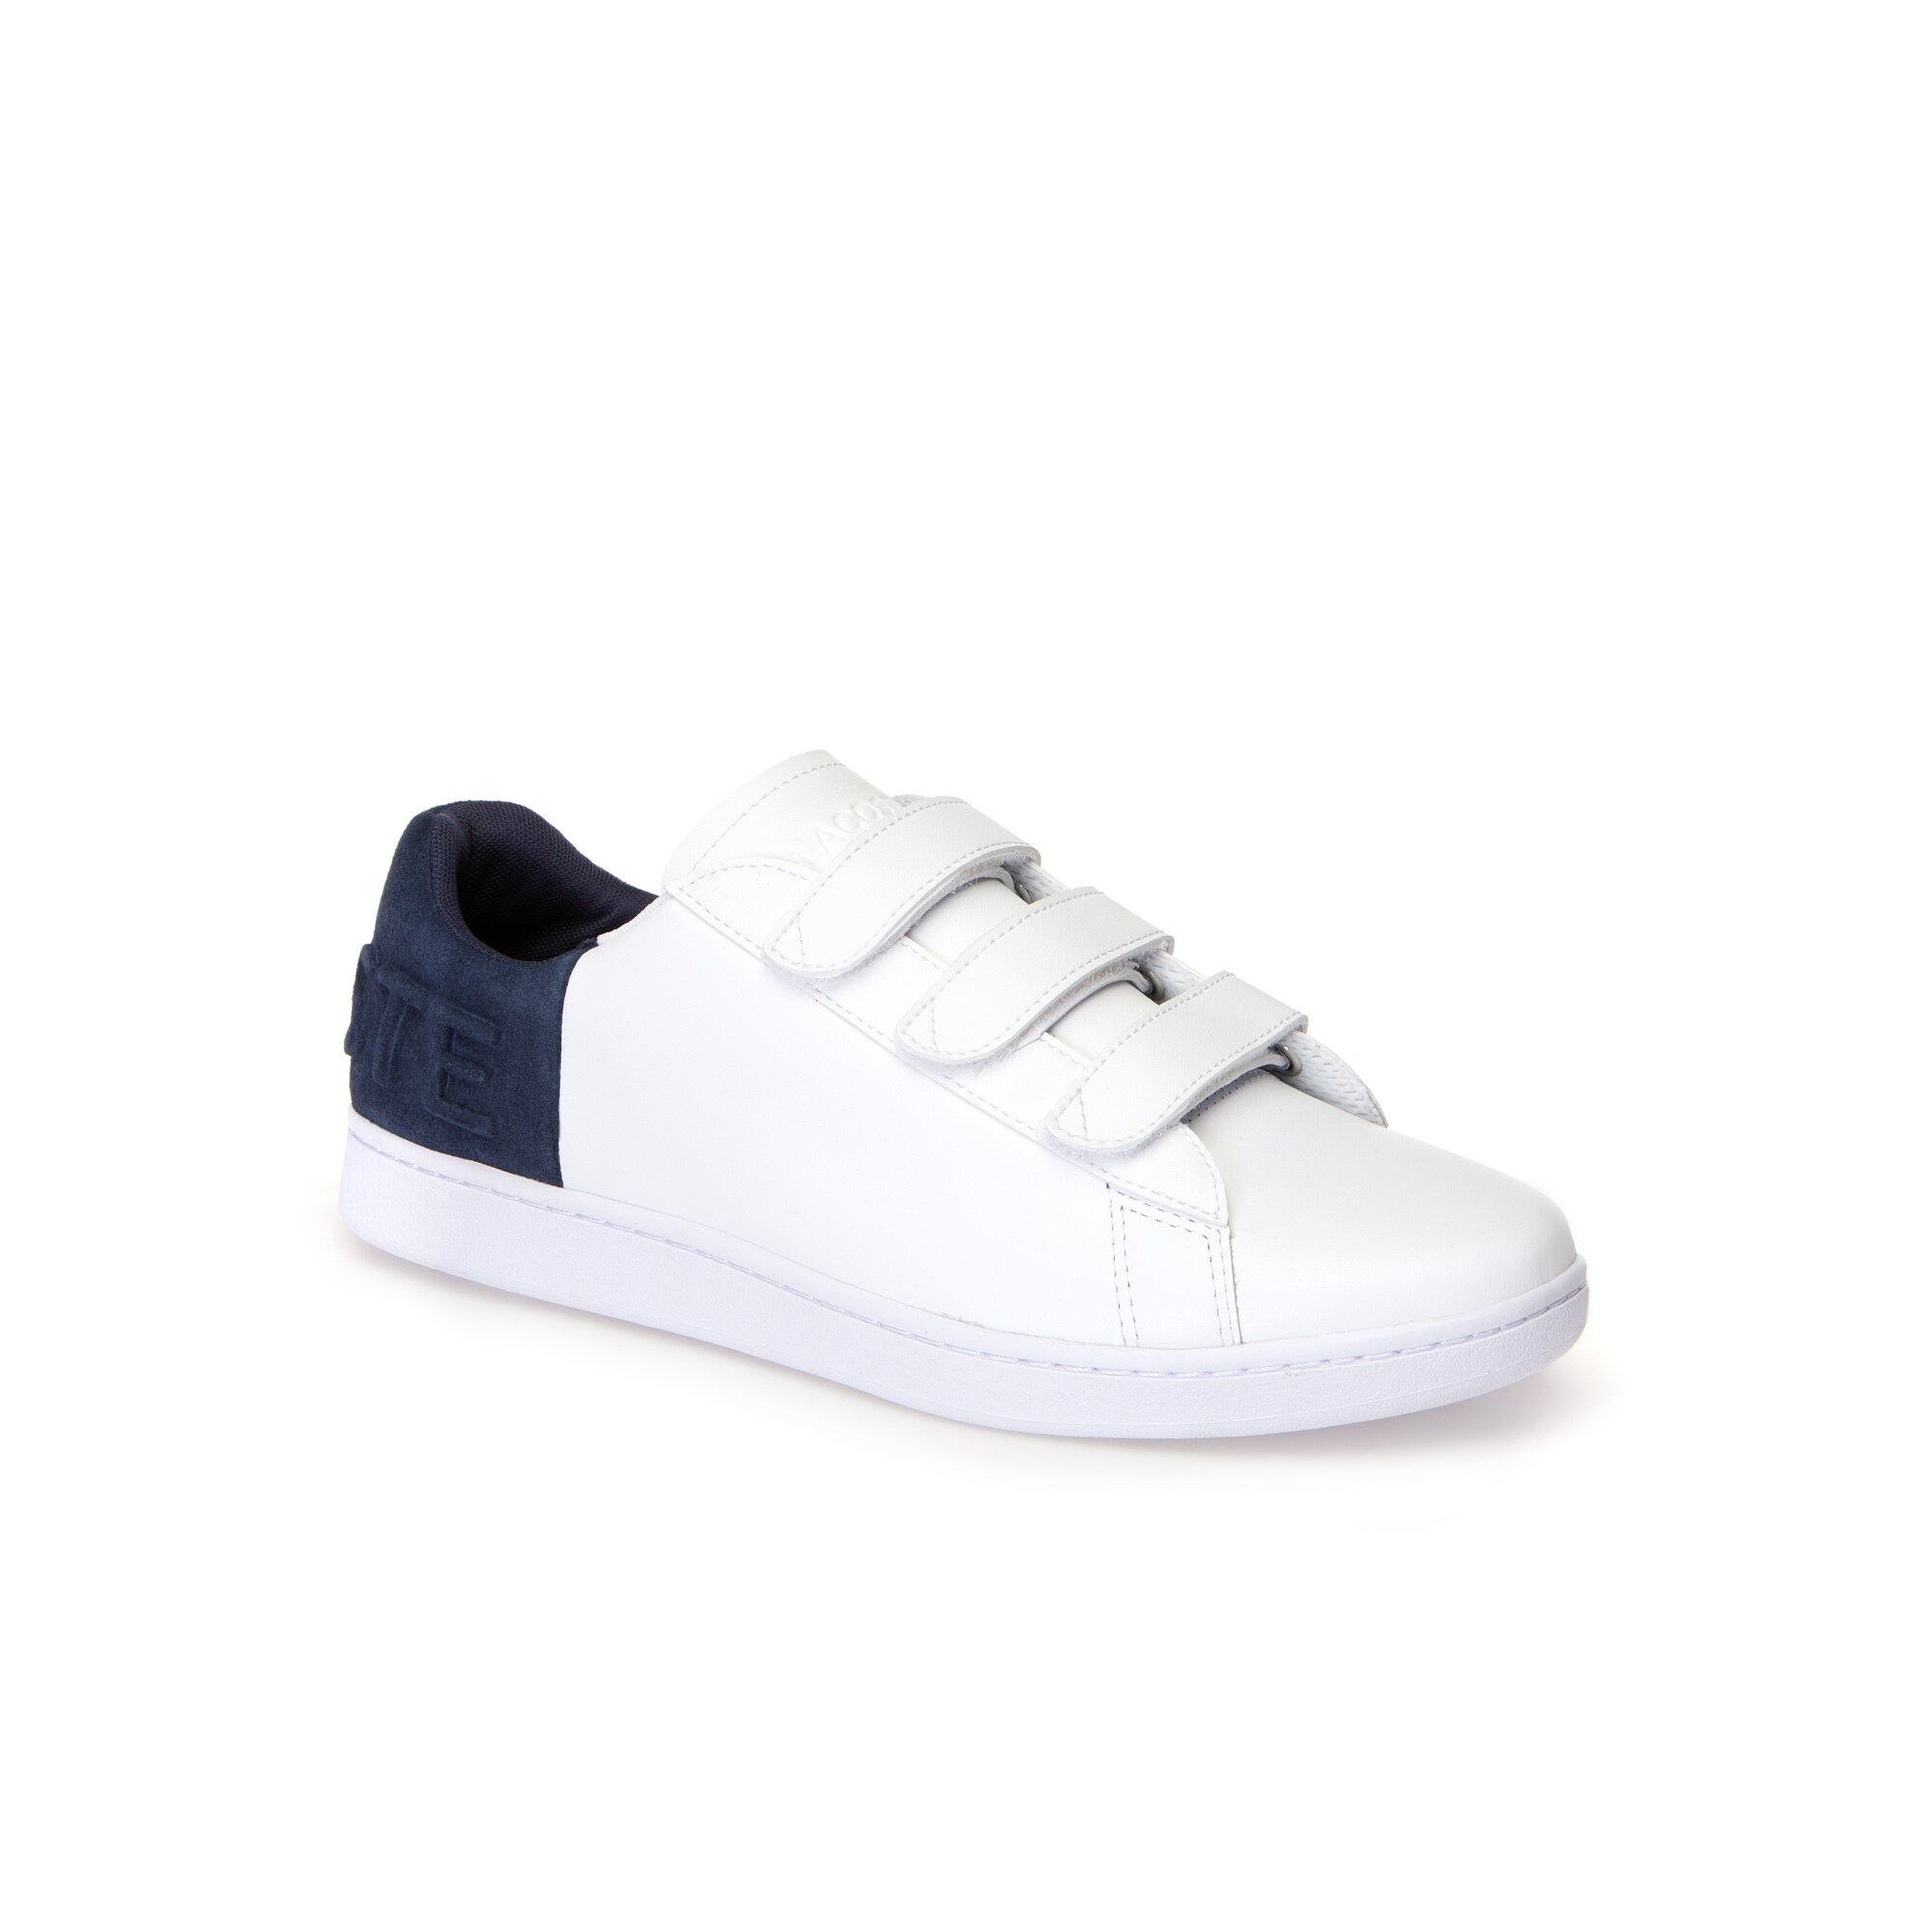 Men's Carnaby Evo Strap Leather and Suede Trainers